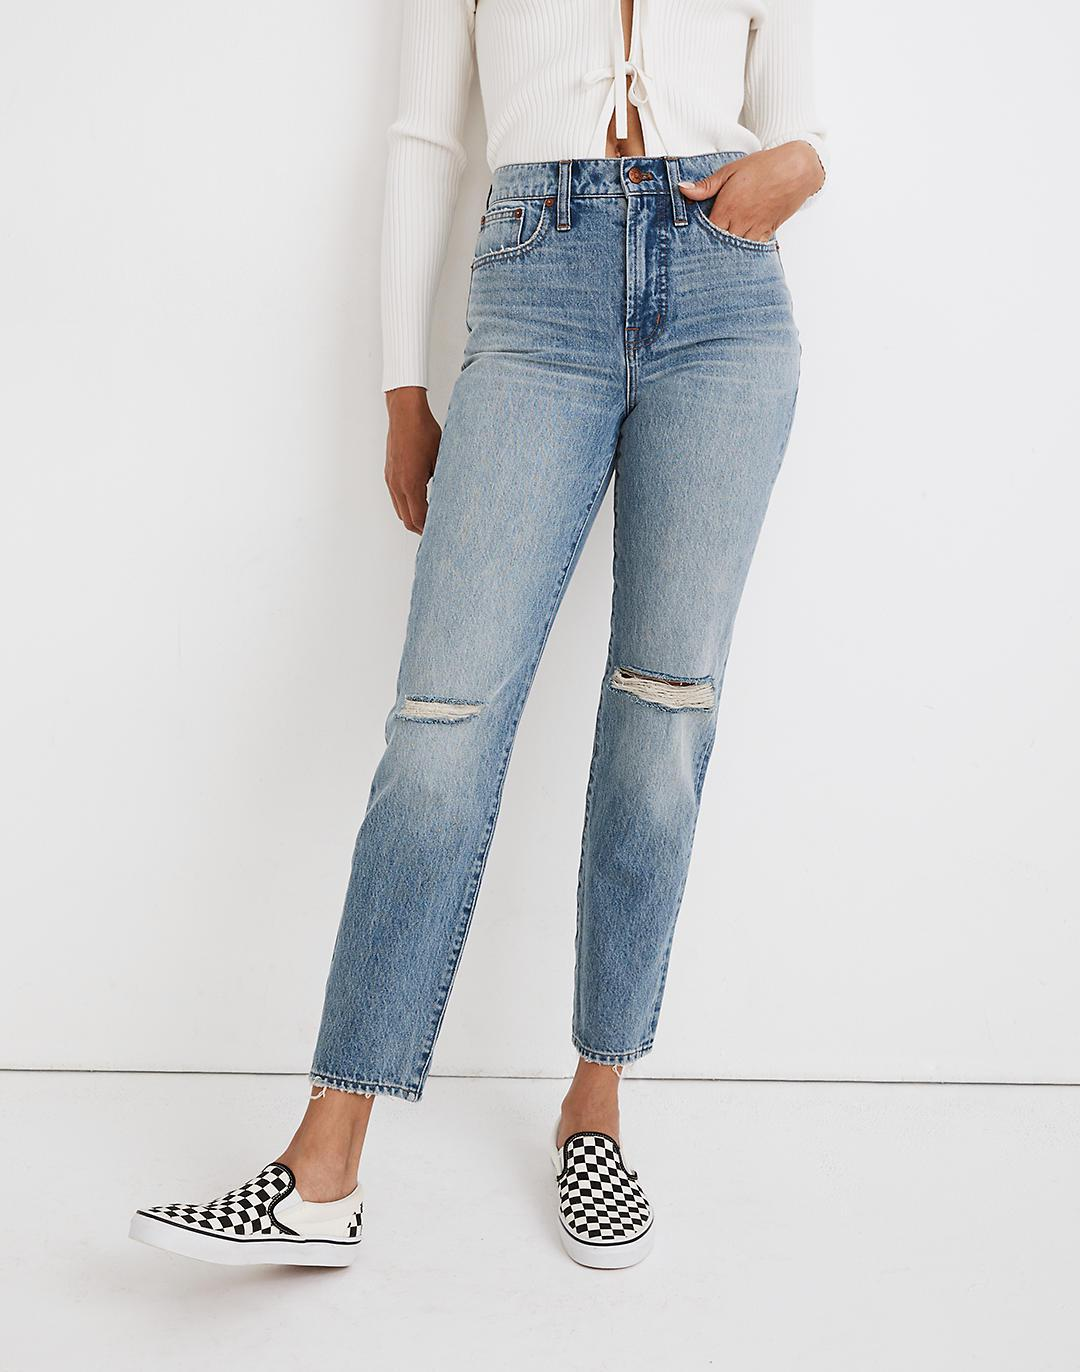 The Perfect Vintage Jean in Phillips Wash: Knee-Rips Edition 3